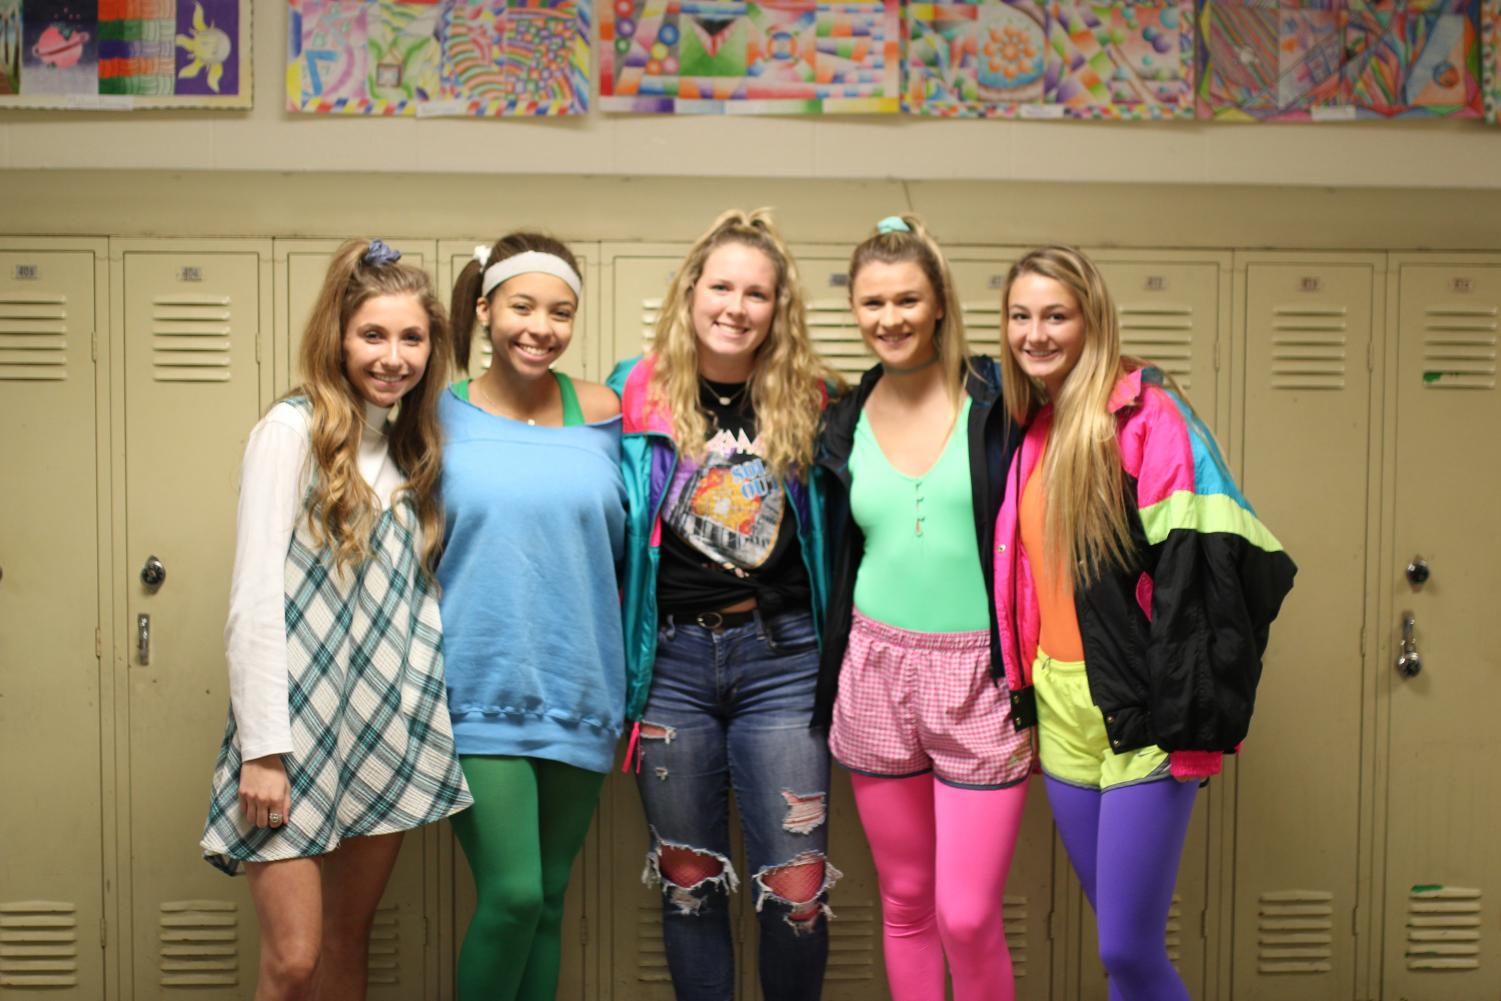 Seniors Casey Montgomery, Karigan Smith, Abbey Moffett, Kasey Abel, and Gabby Blakenship pose for a picture against the lockers in their best 80's attire.